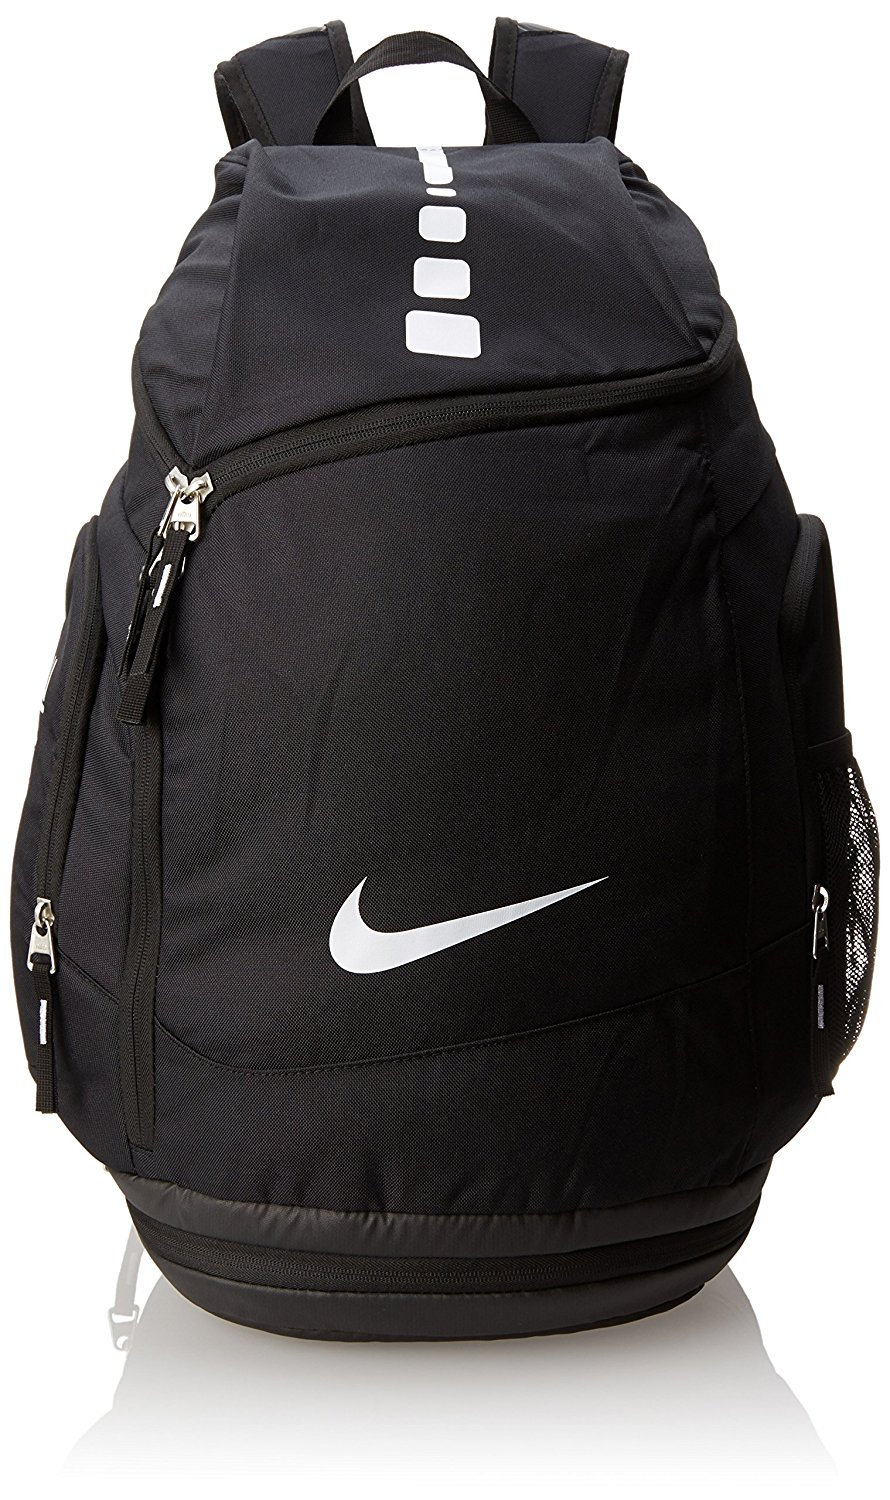 9040d4781 Top 10 best basketball backpacks of 2019 – Expert Product Reviewer